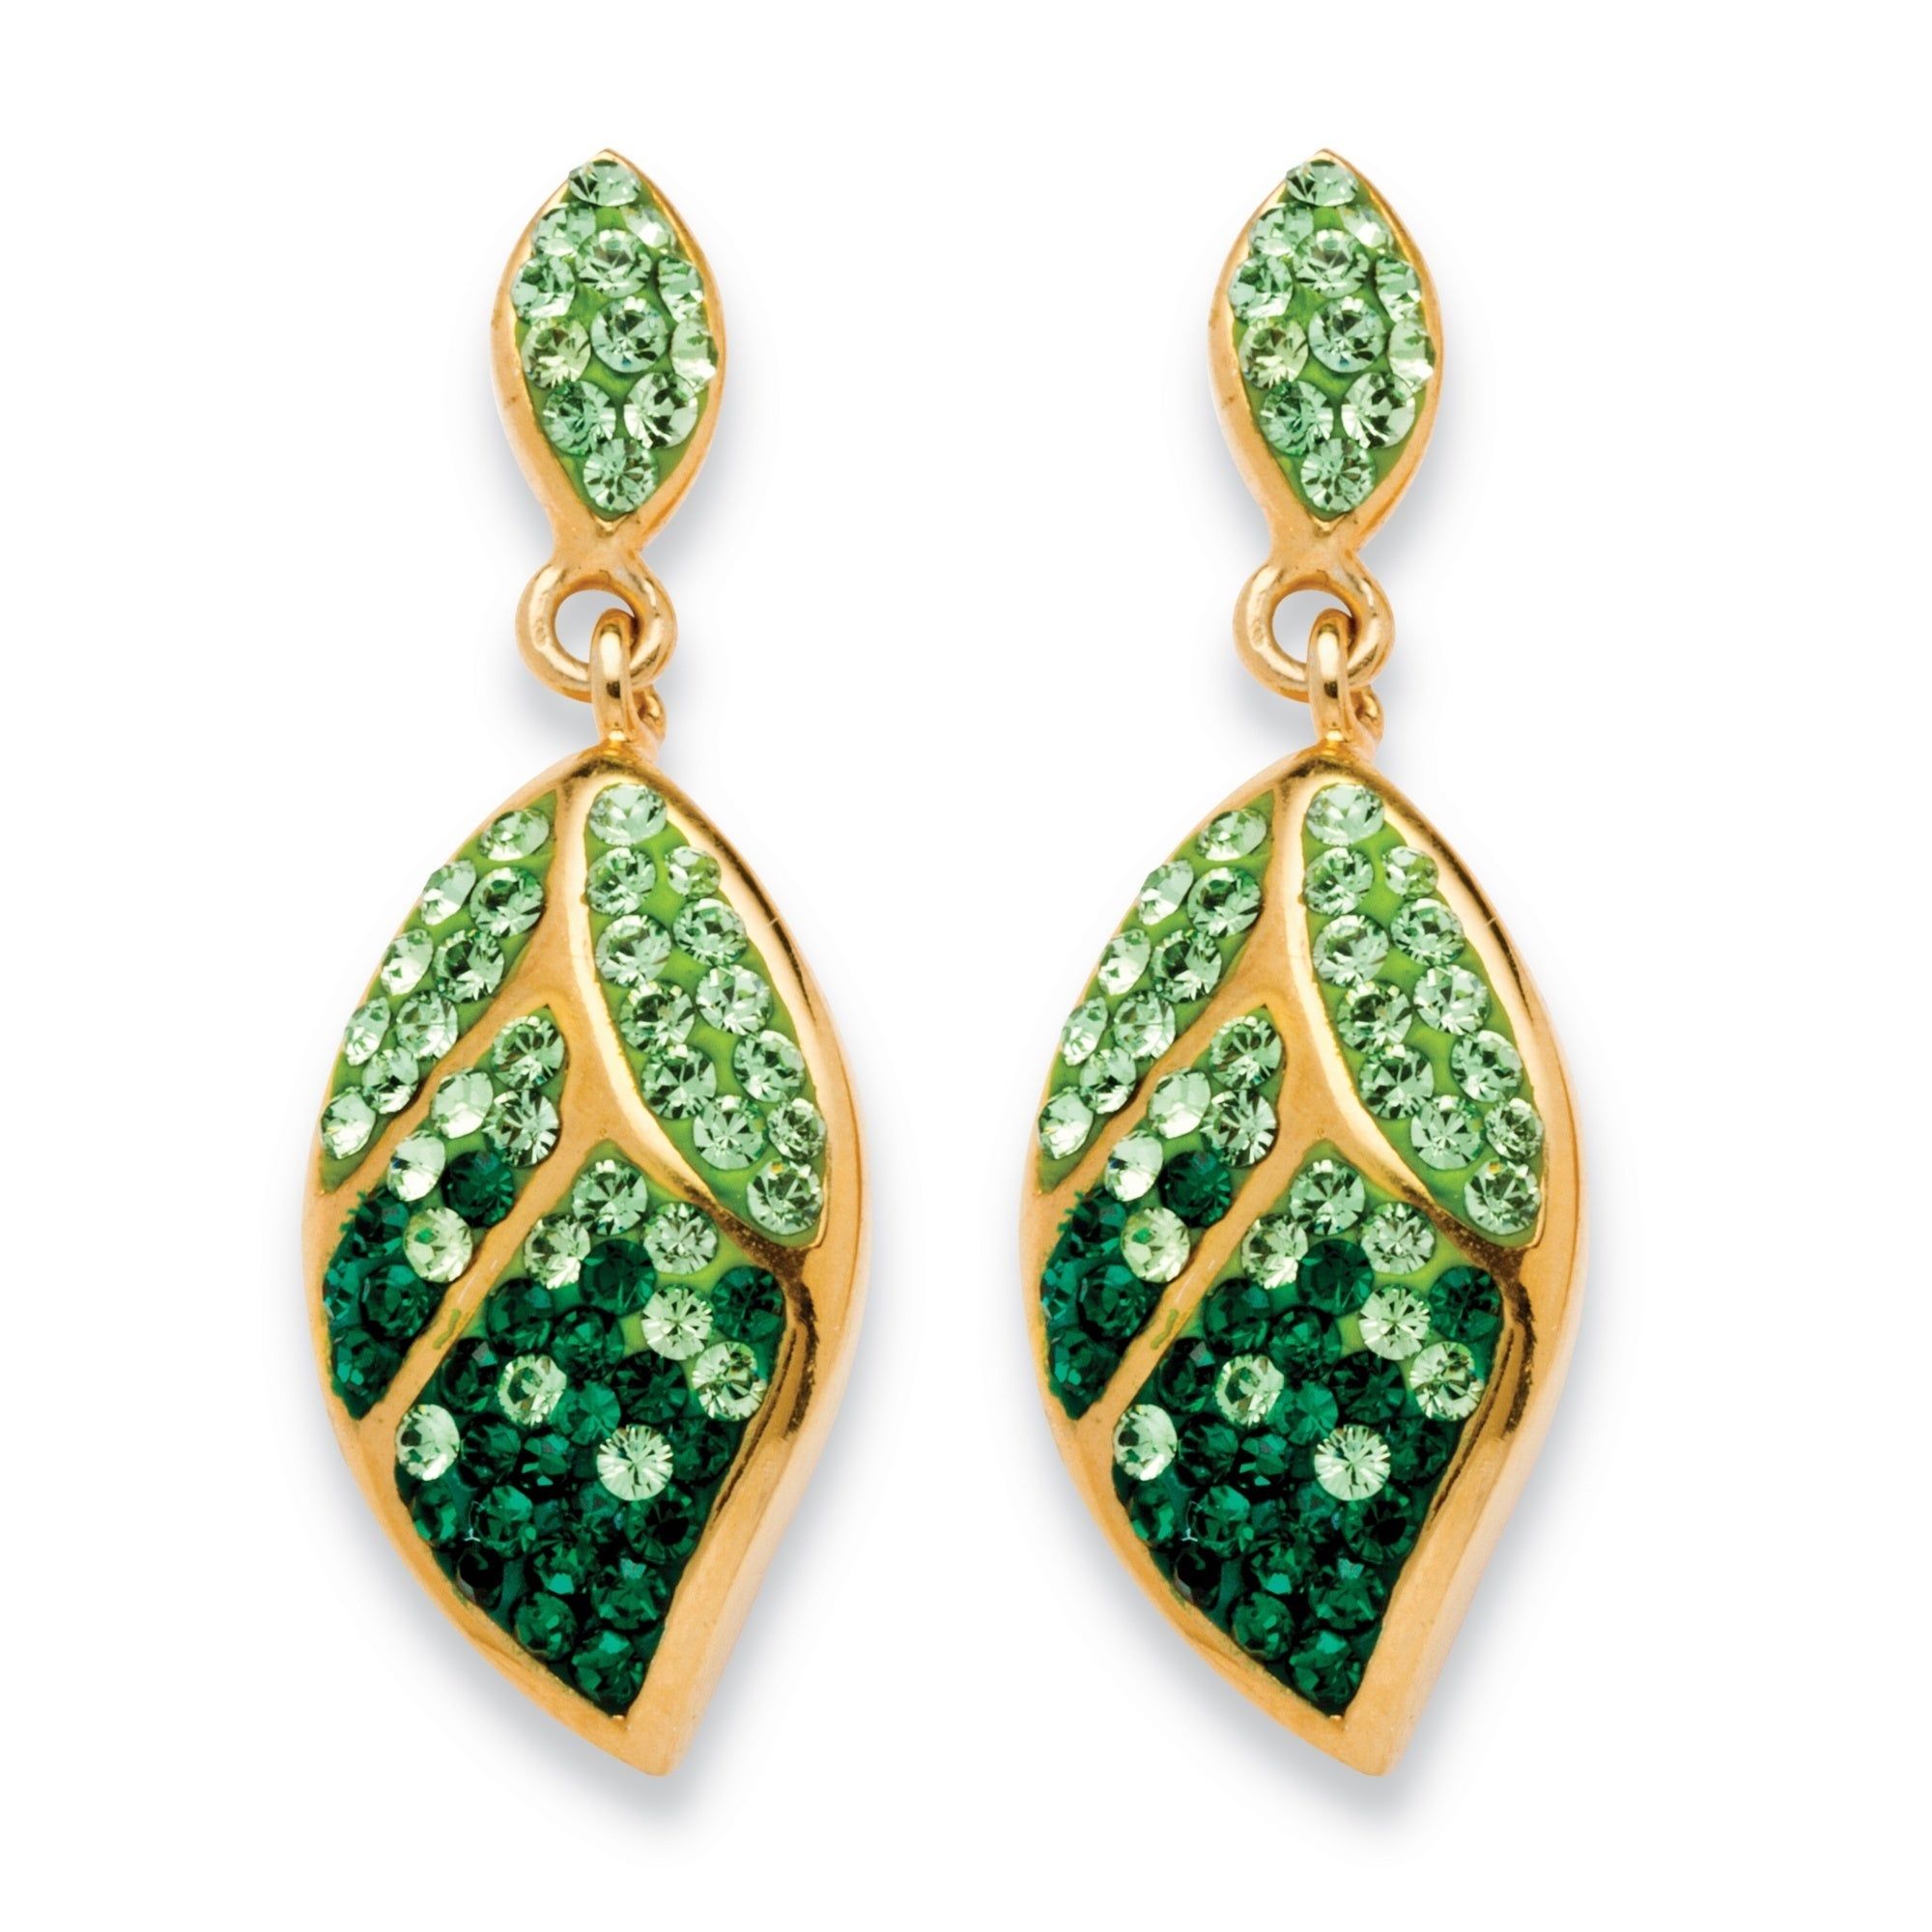 Pave Crystal Green Leaf Drop Earrings Made With Swarovski Elements In Yellow Gold Tone Col On Free Shipping Orders Over 45